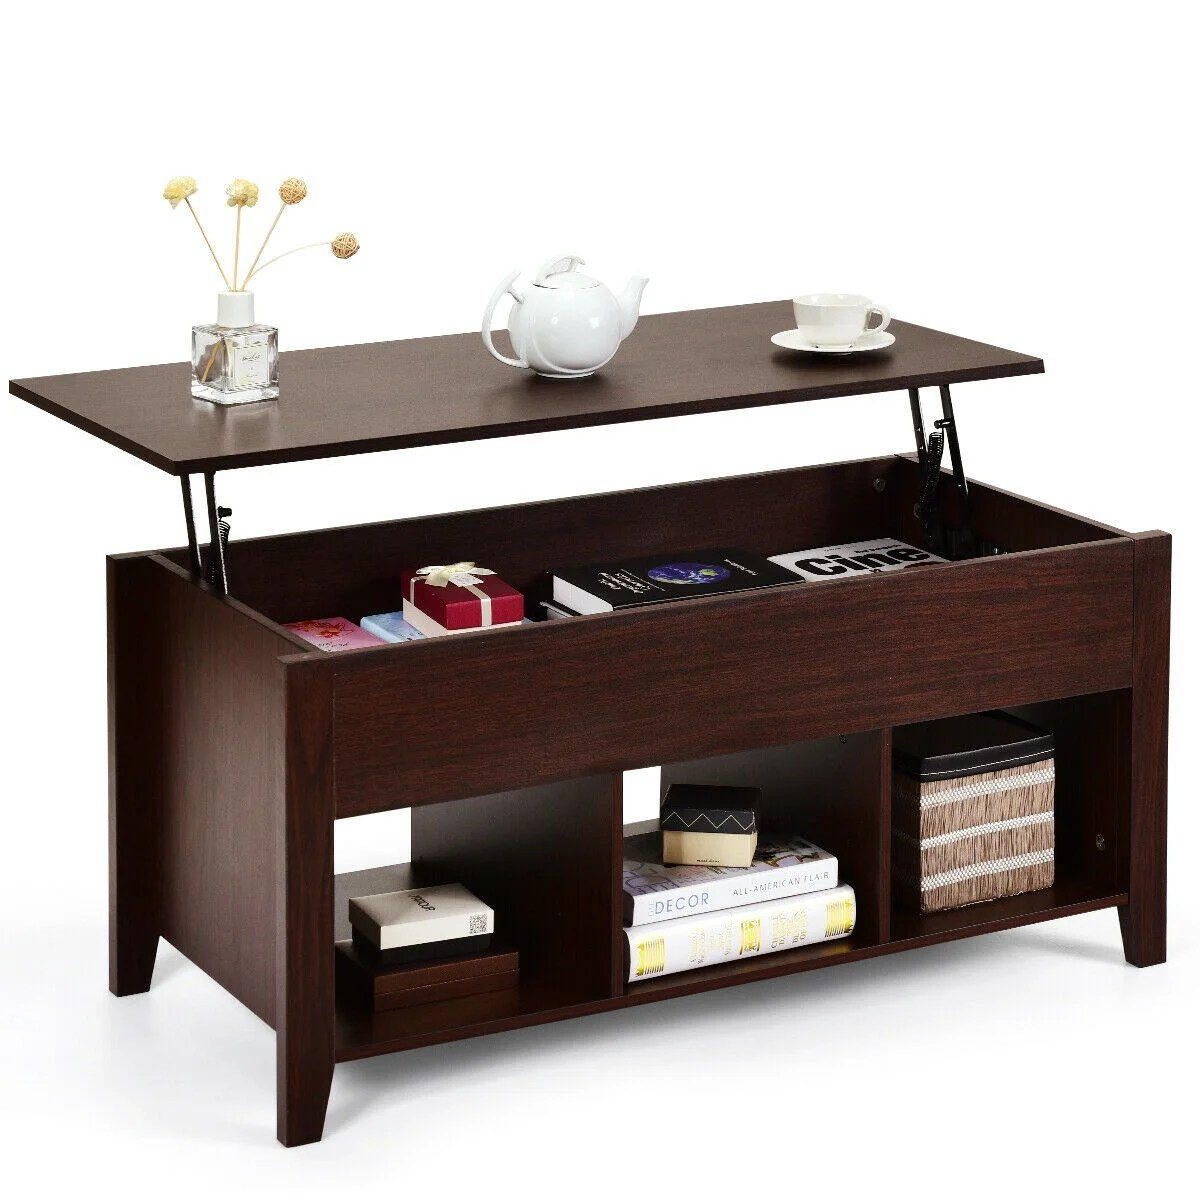 Rattan Sofa Luanda Buy Lift Top Coffee Console Sofa End Tables Online At